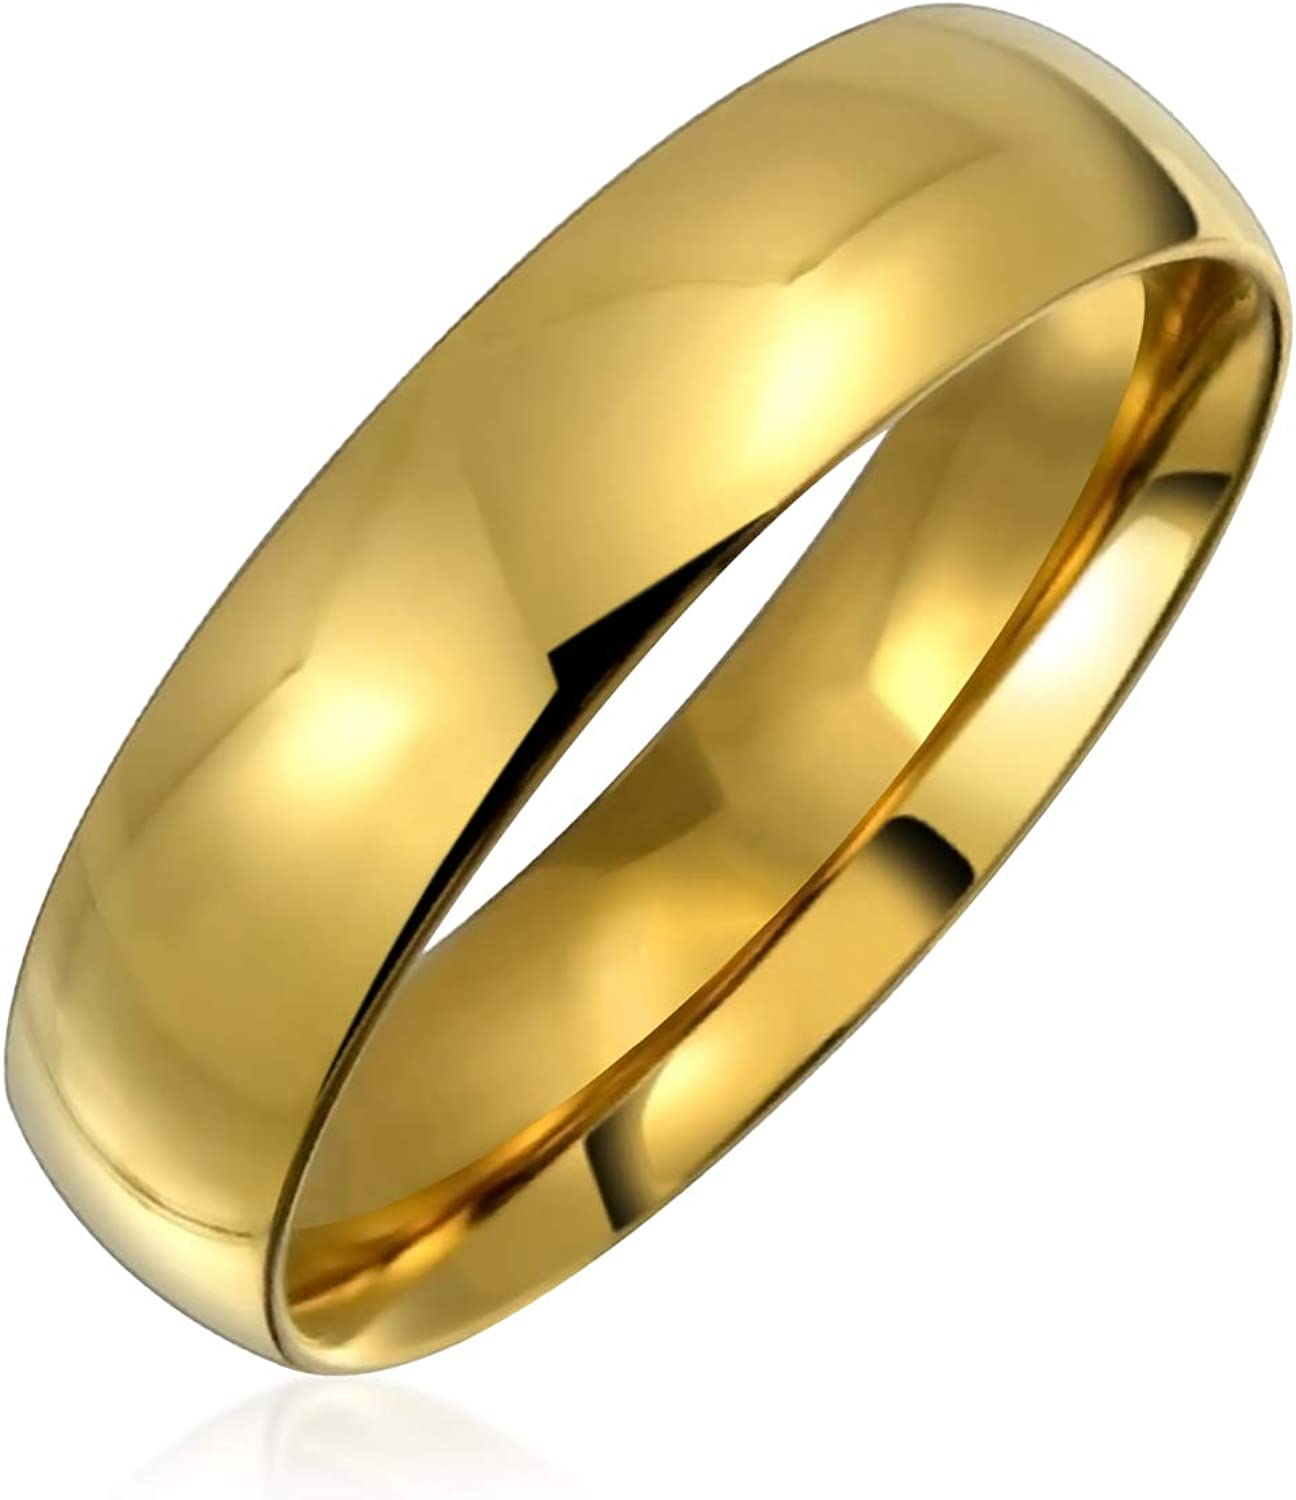 Personalize Plain Simple Dome Comfort Band Ring Fit Wedding Max 73% OFF 5MM Nashville-Davidson Mall